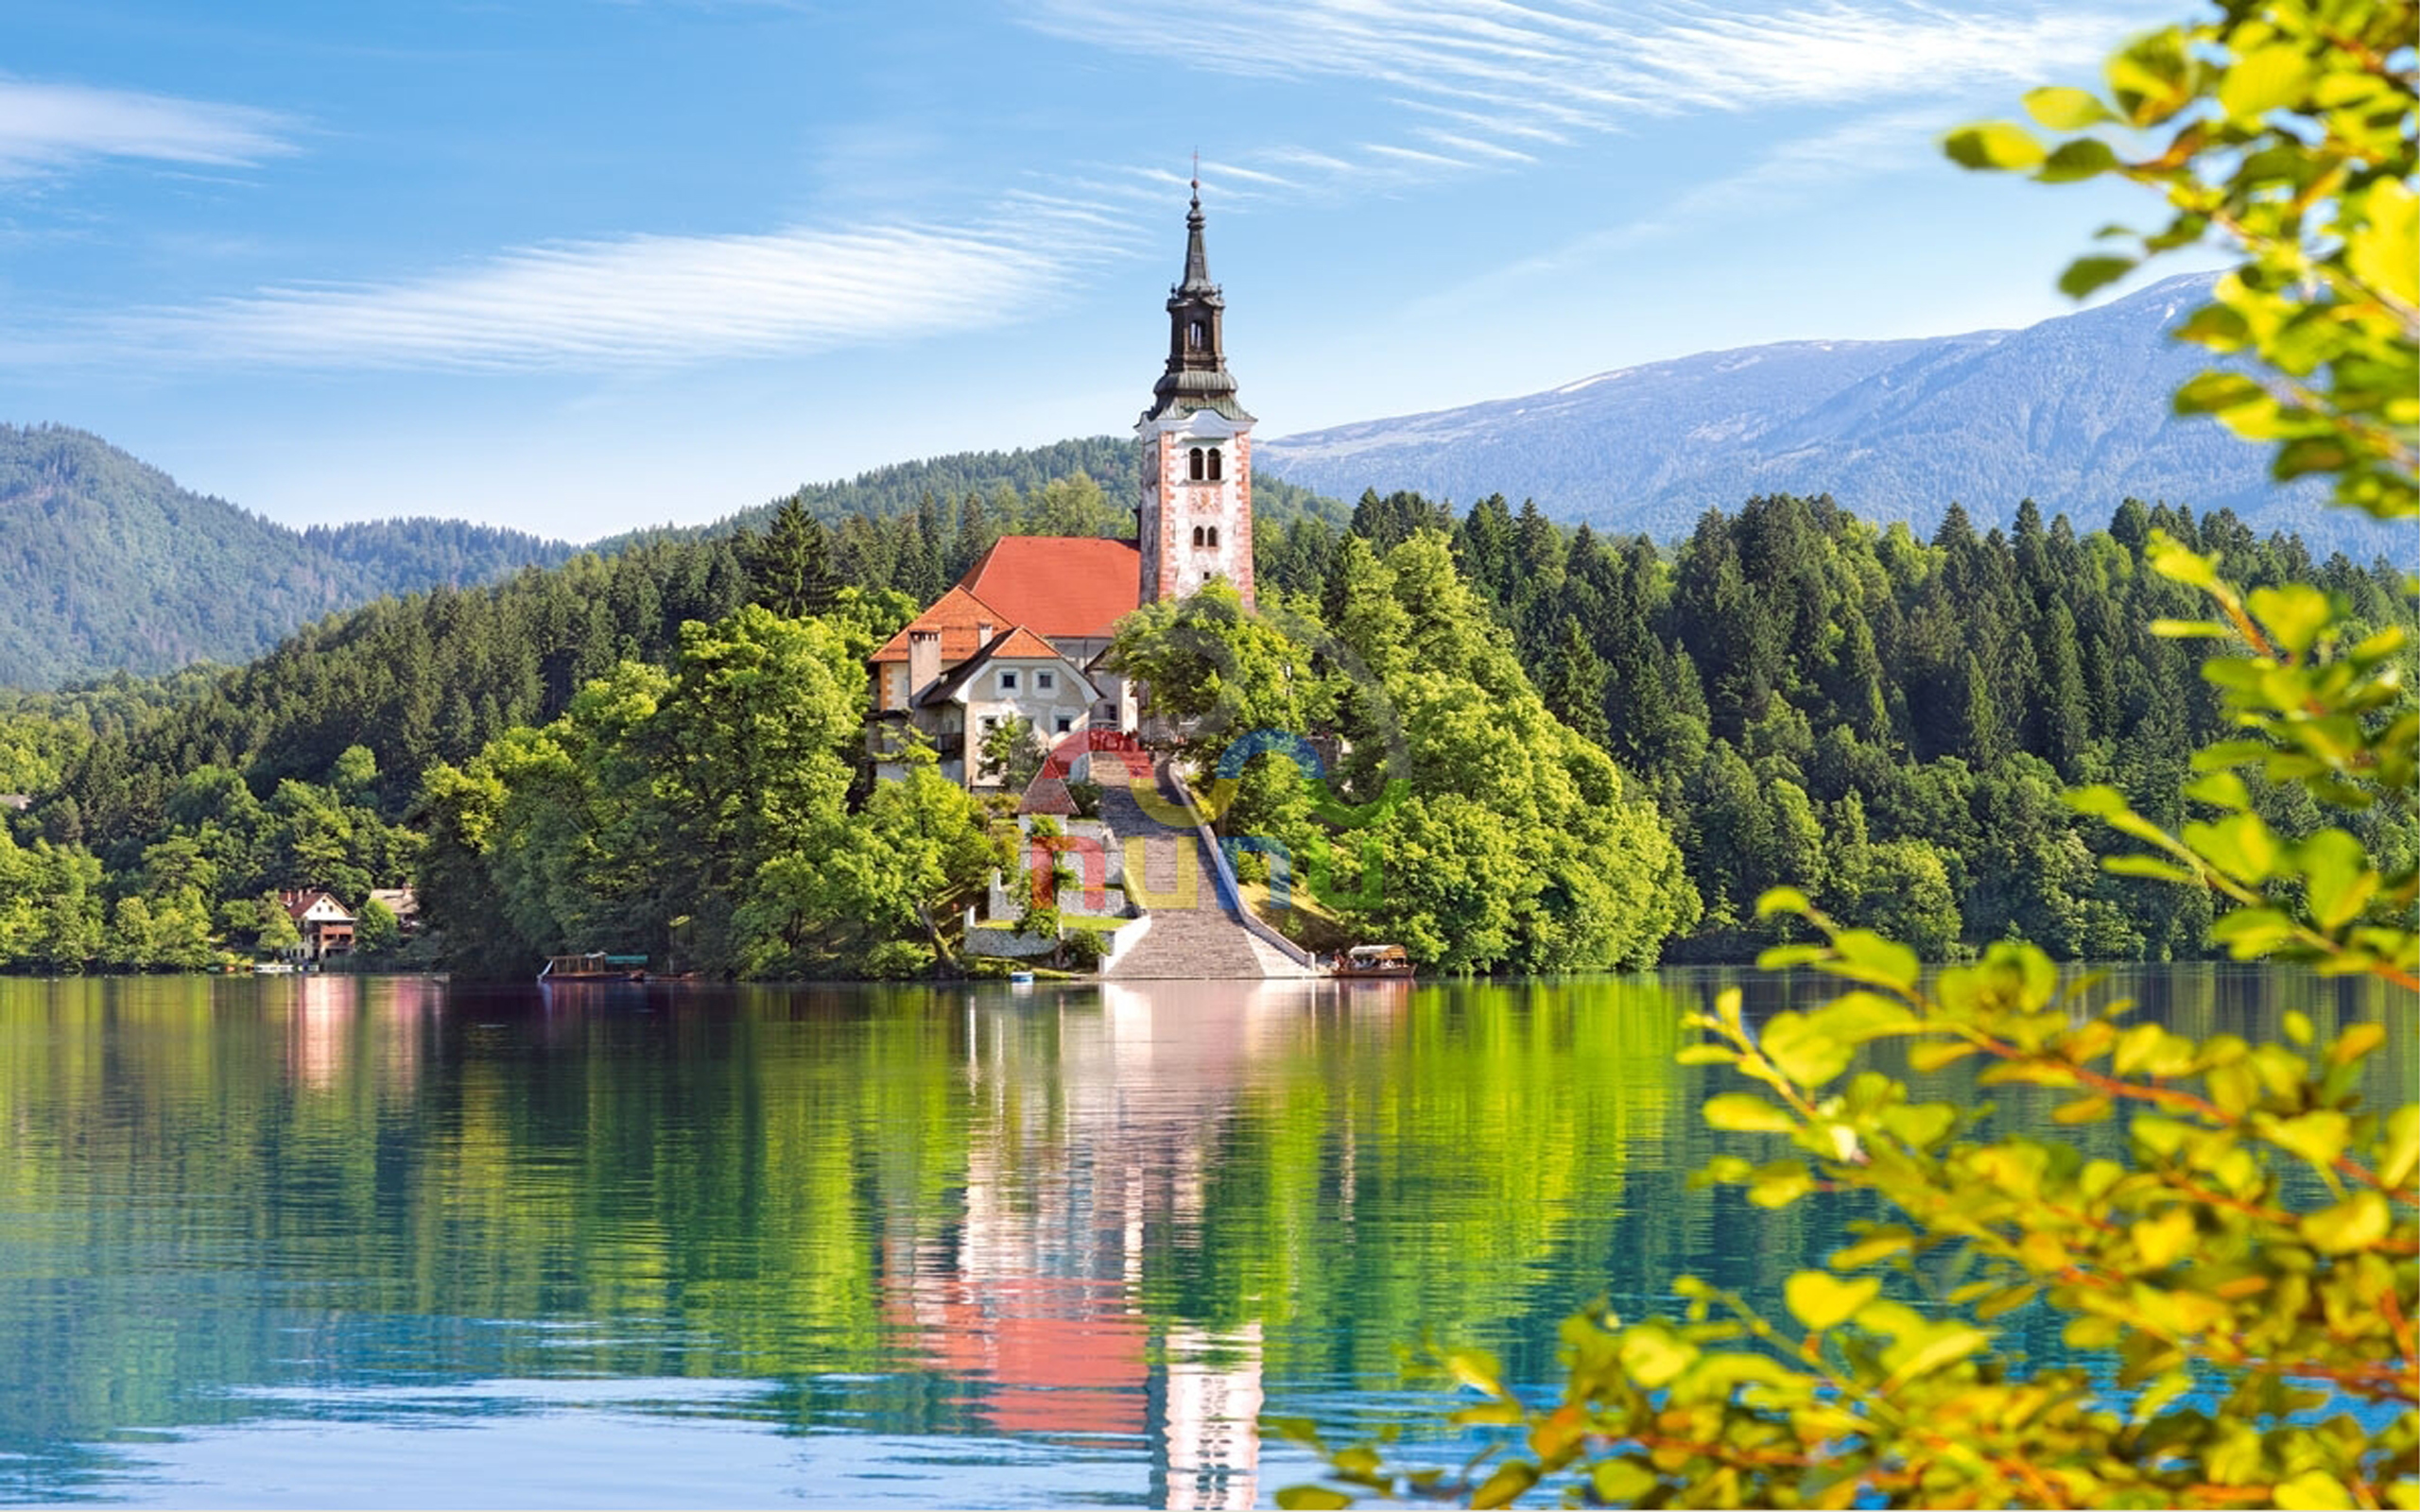 Nature Lake Bled Desktop Background Image Wallpapers13com 2560x1600